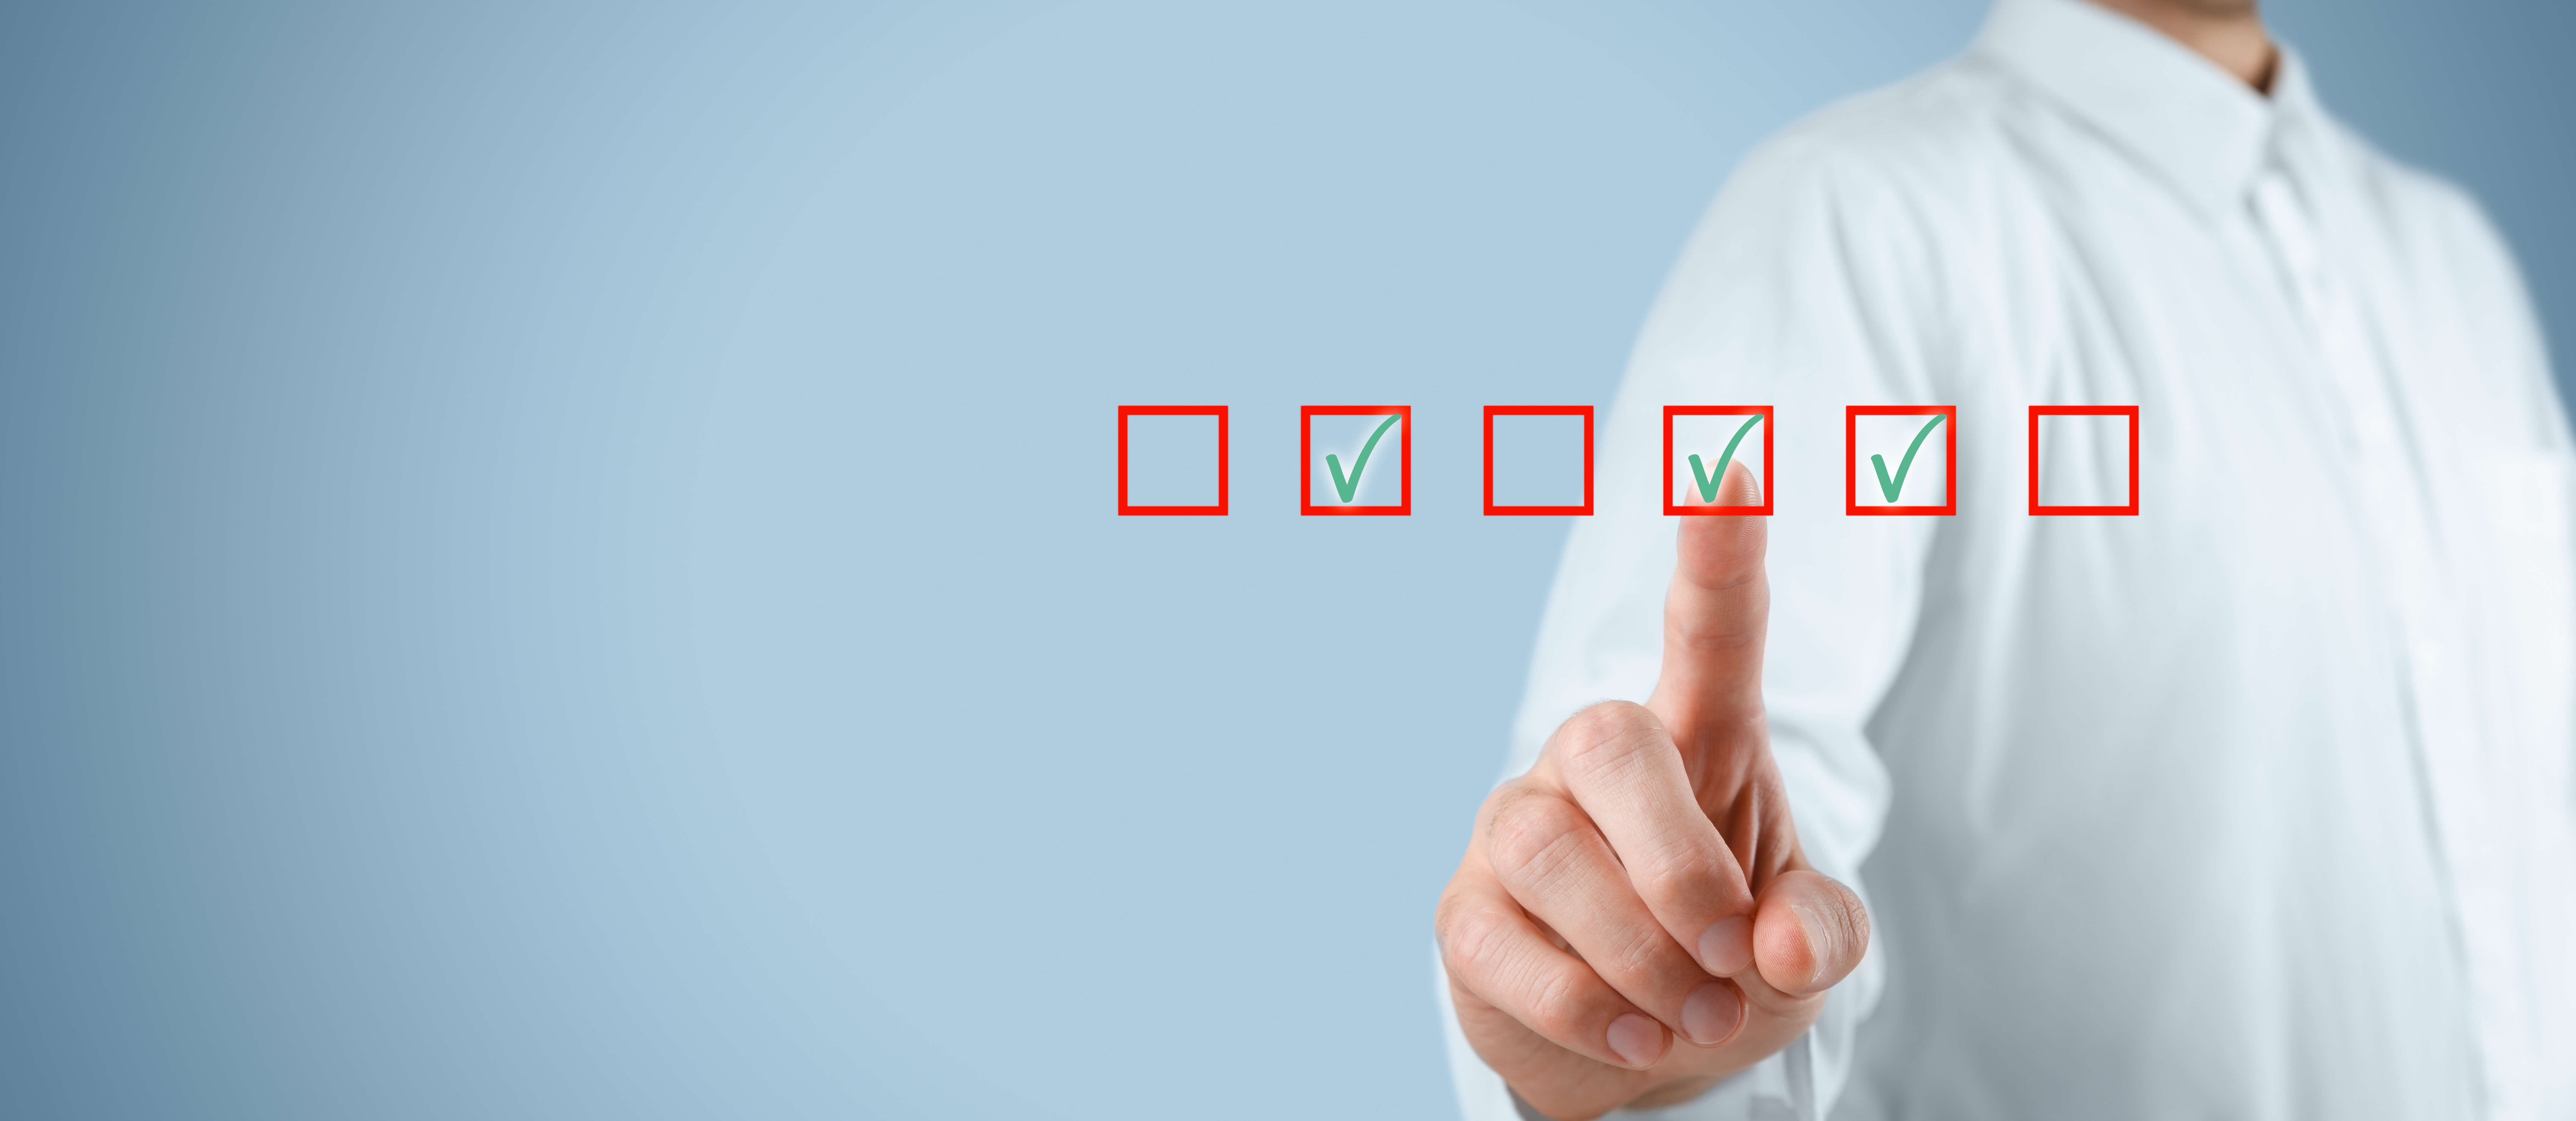 Are Multiple Choice Questions A Good Way To Learn Medicine?